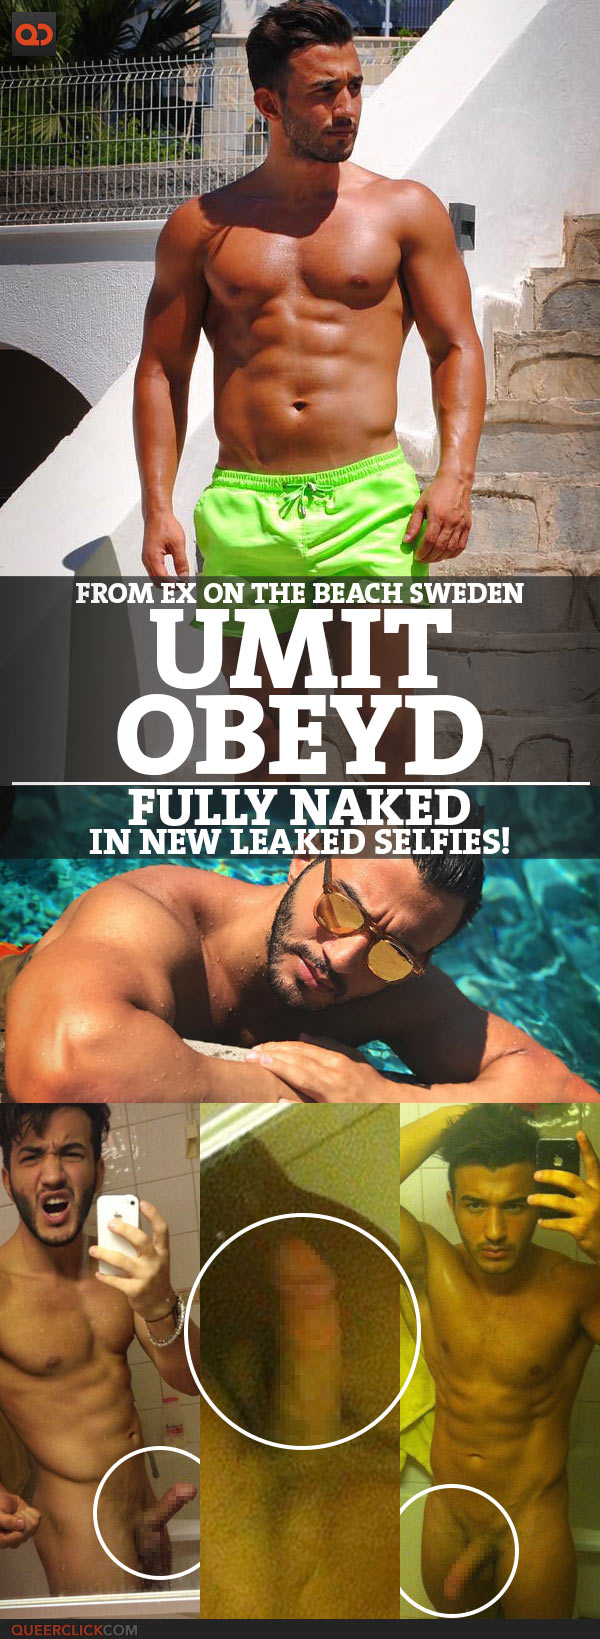 Umit Obeyd, From Ex On The Beach Sweden, Fully Naked In New Leaked Selfies!